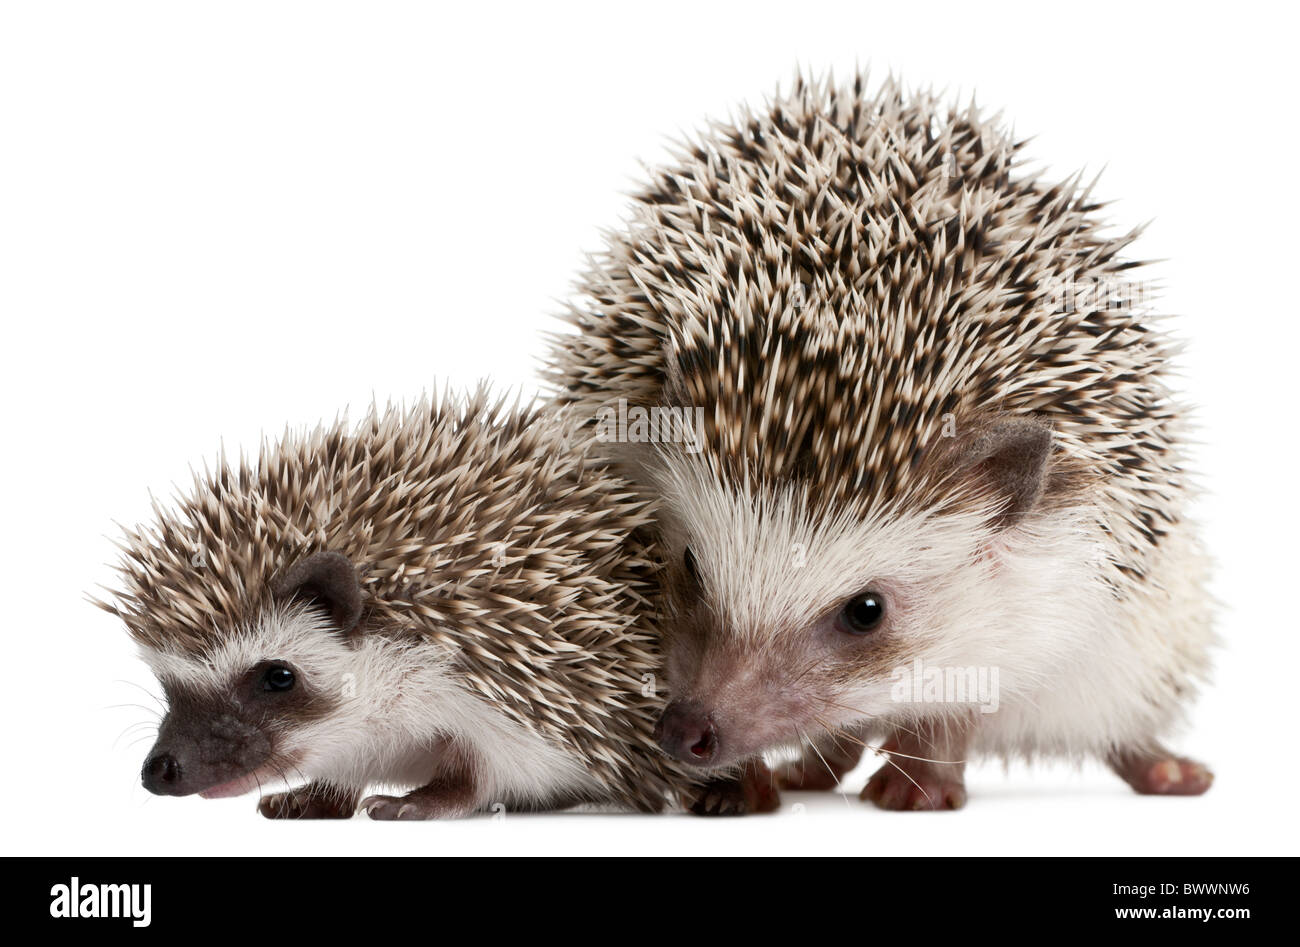 Four-toed Hedgehogs, Atelerix albiventris, 3 weeks old, in front of white background - Stock Image